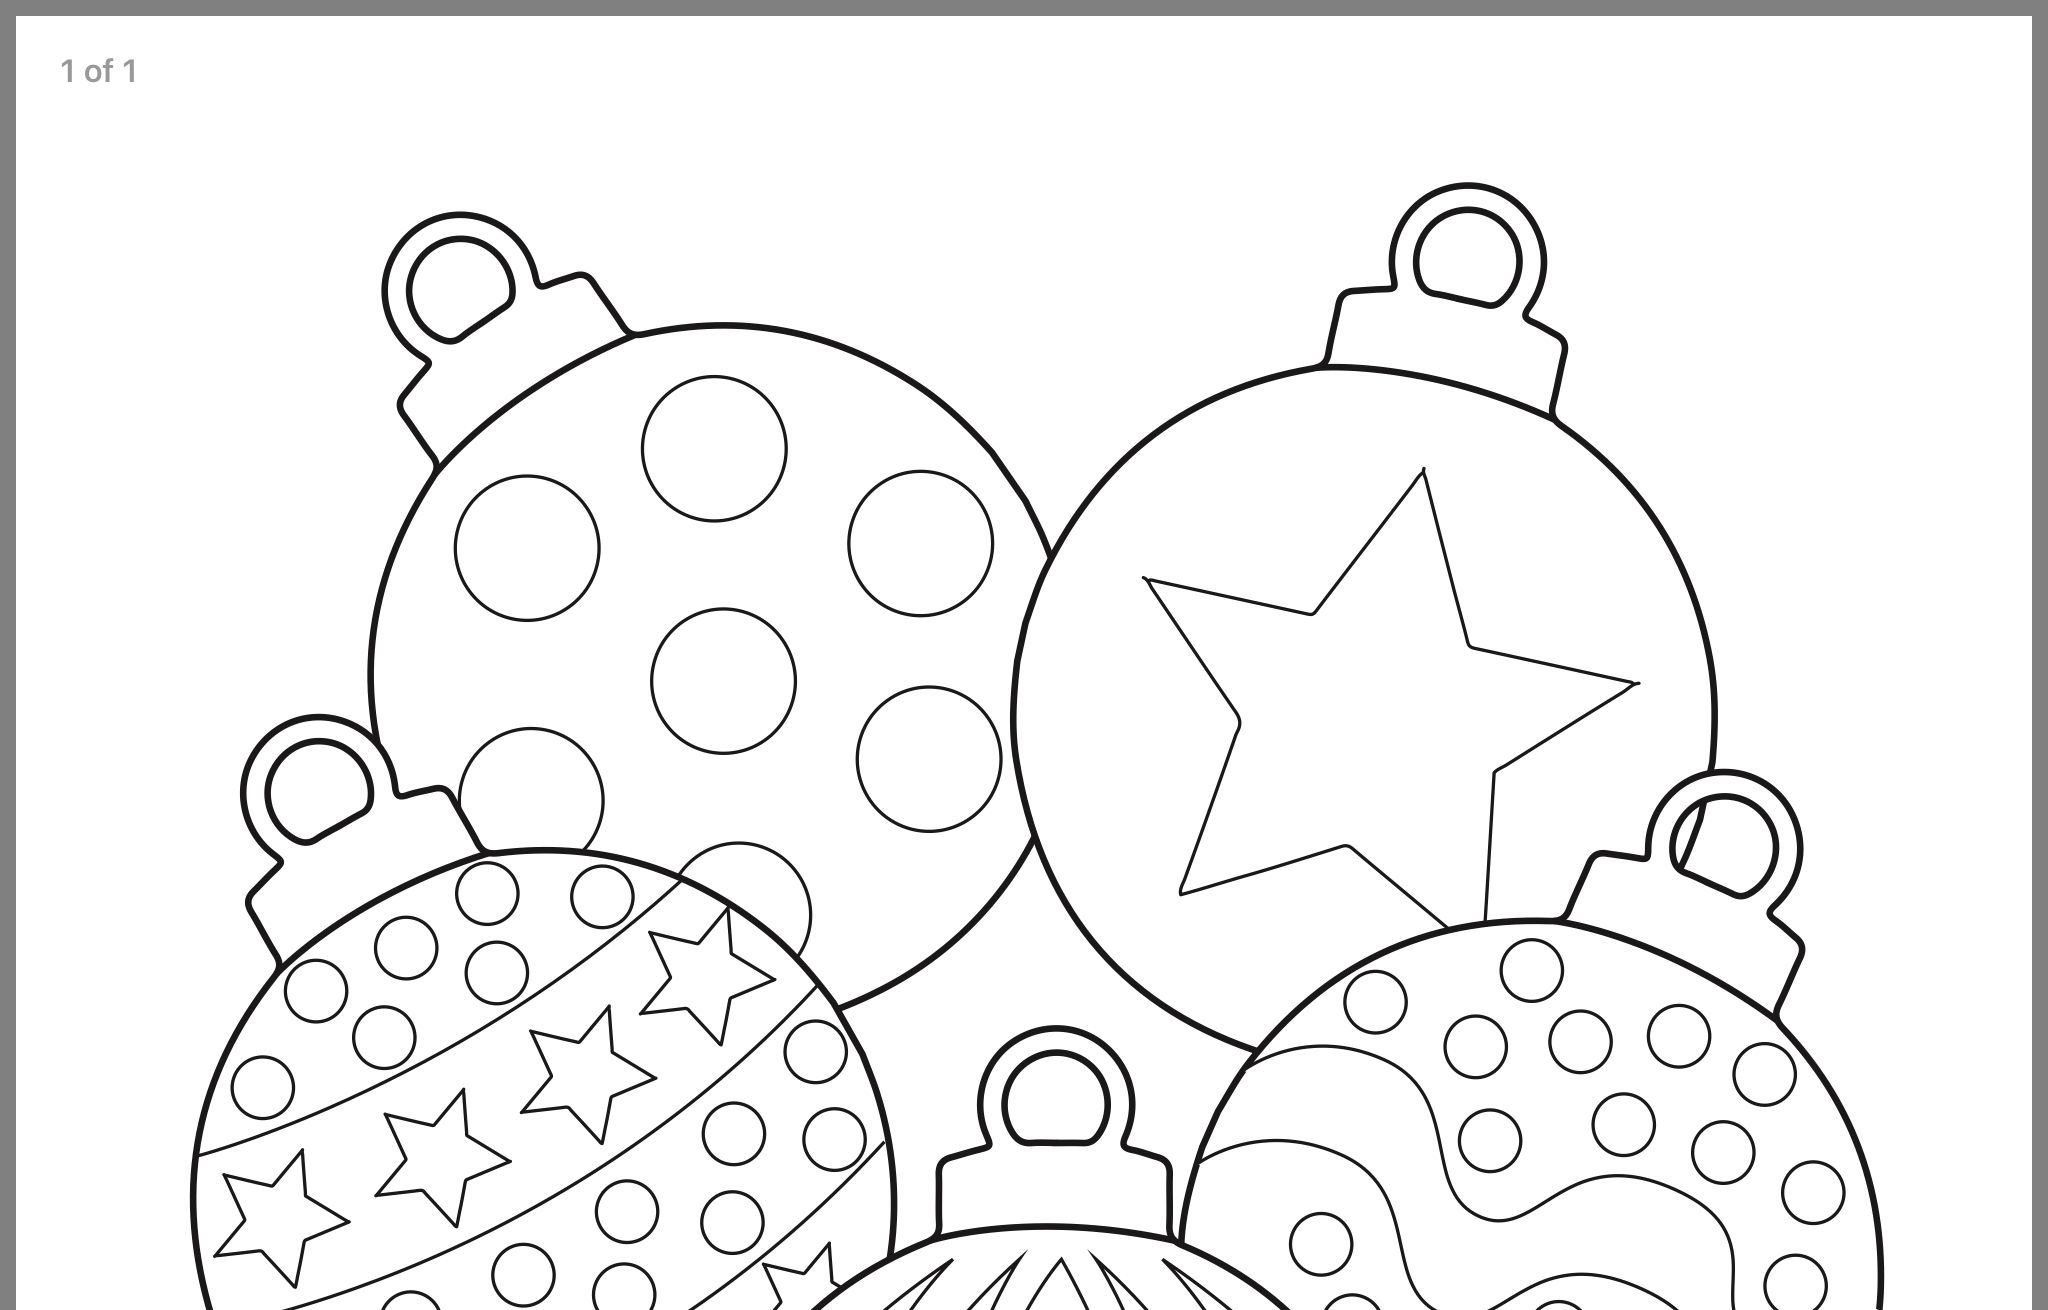 christmas baubles templates to colour httpwwwcoloringbook4kidscom201212christmas ball colour templates to baubles christmas